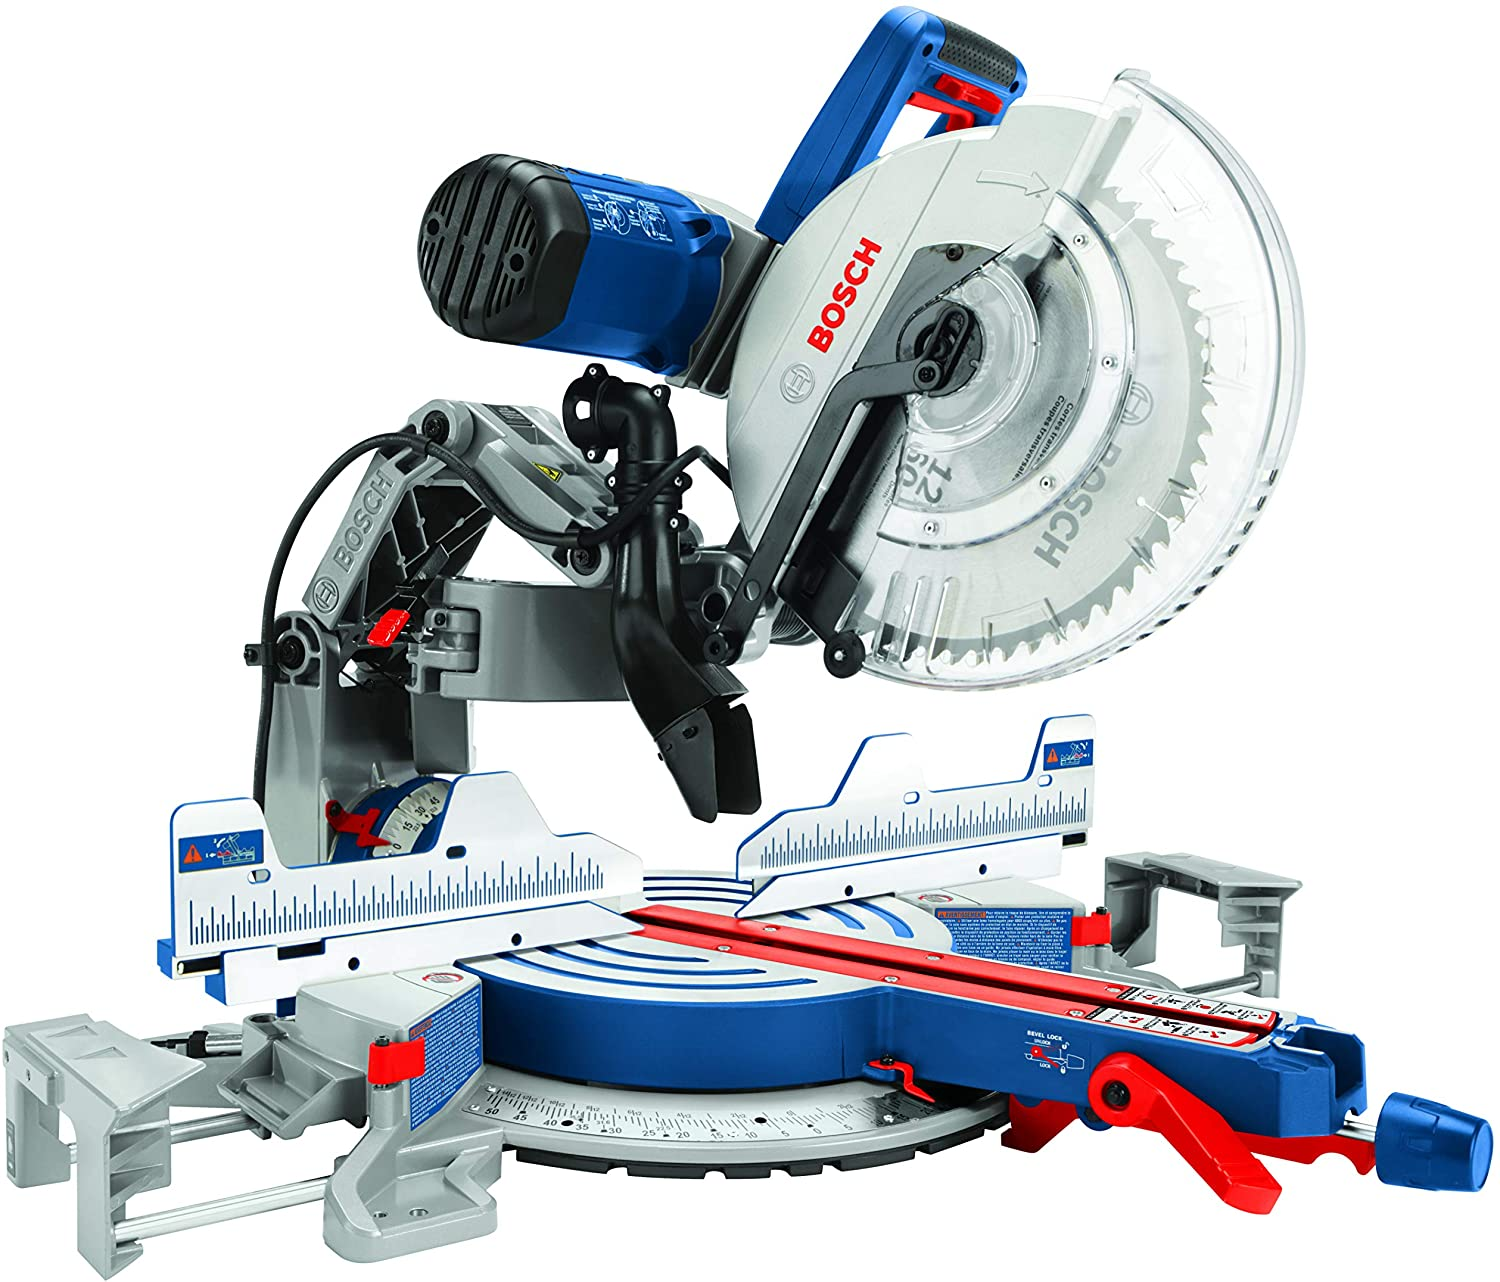 Bosch Dual Bevel Sliding Miter Saw